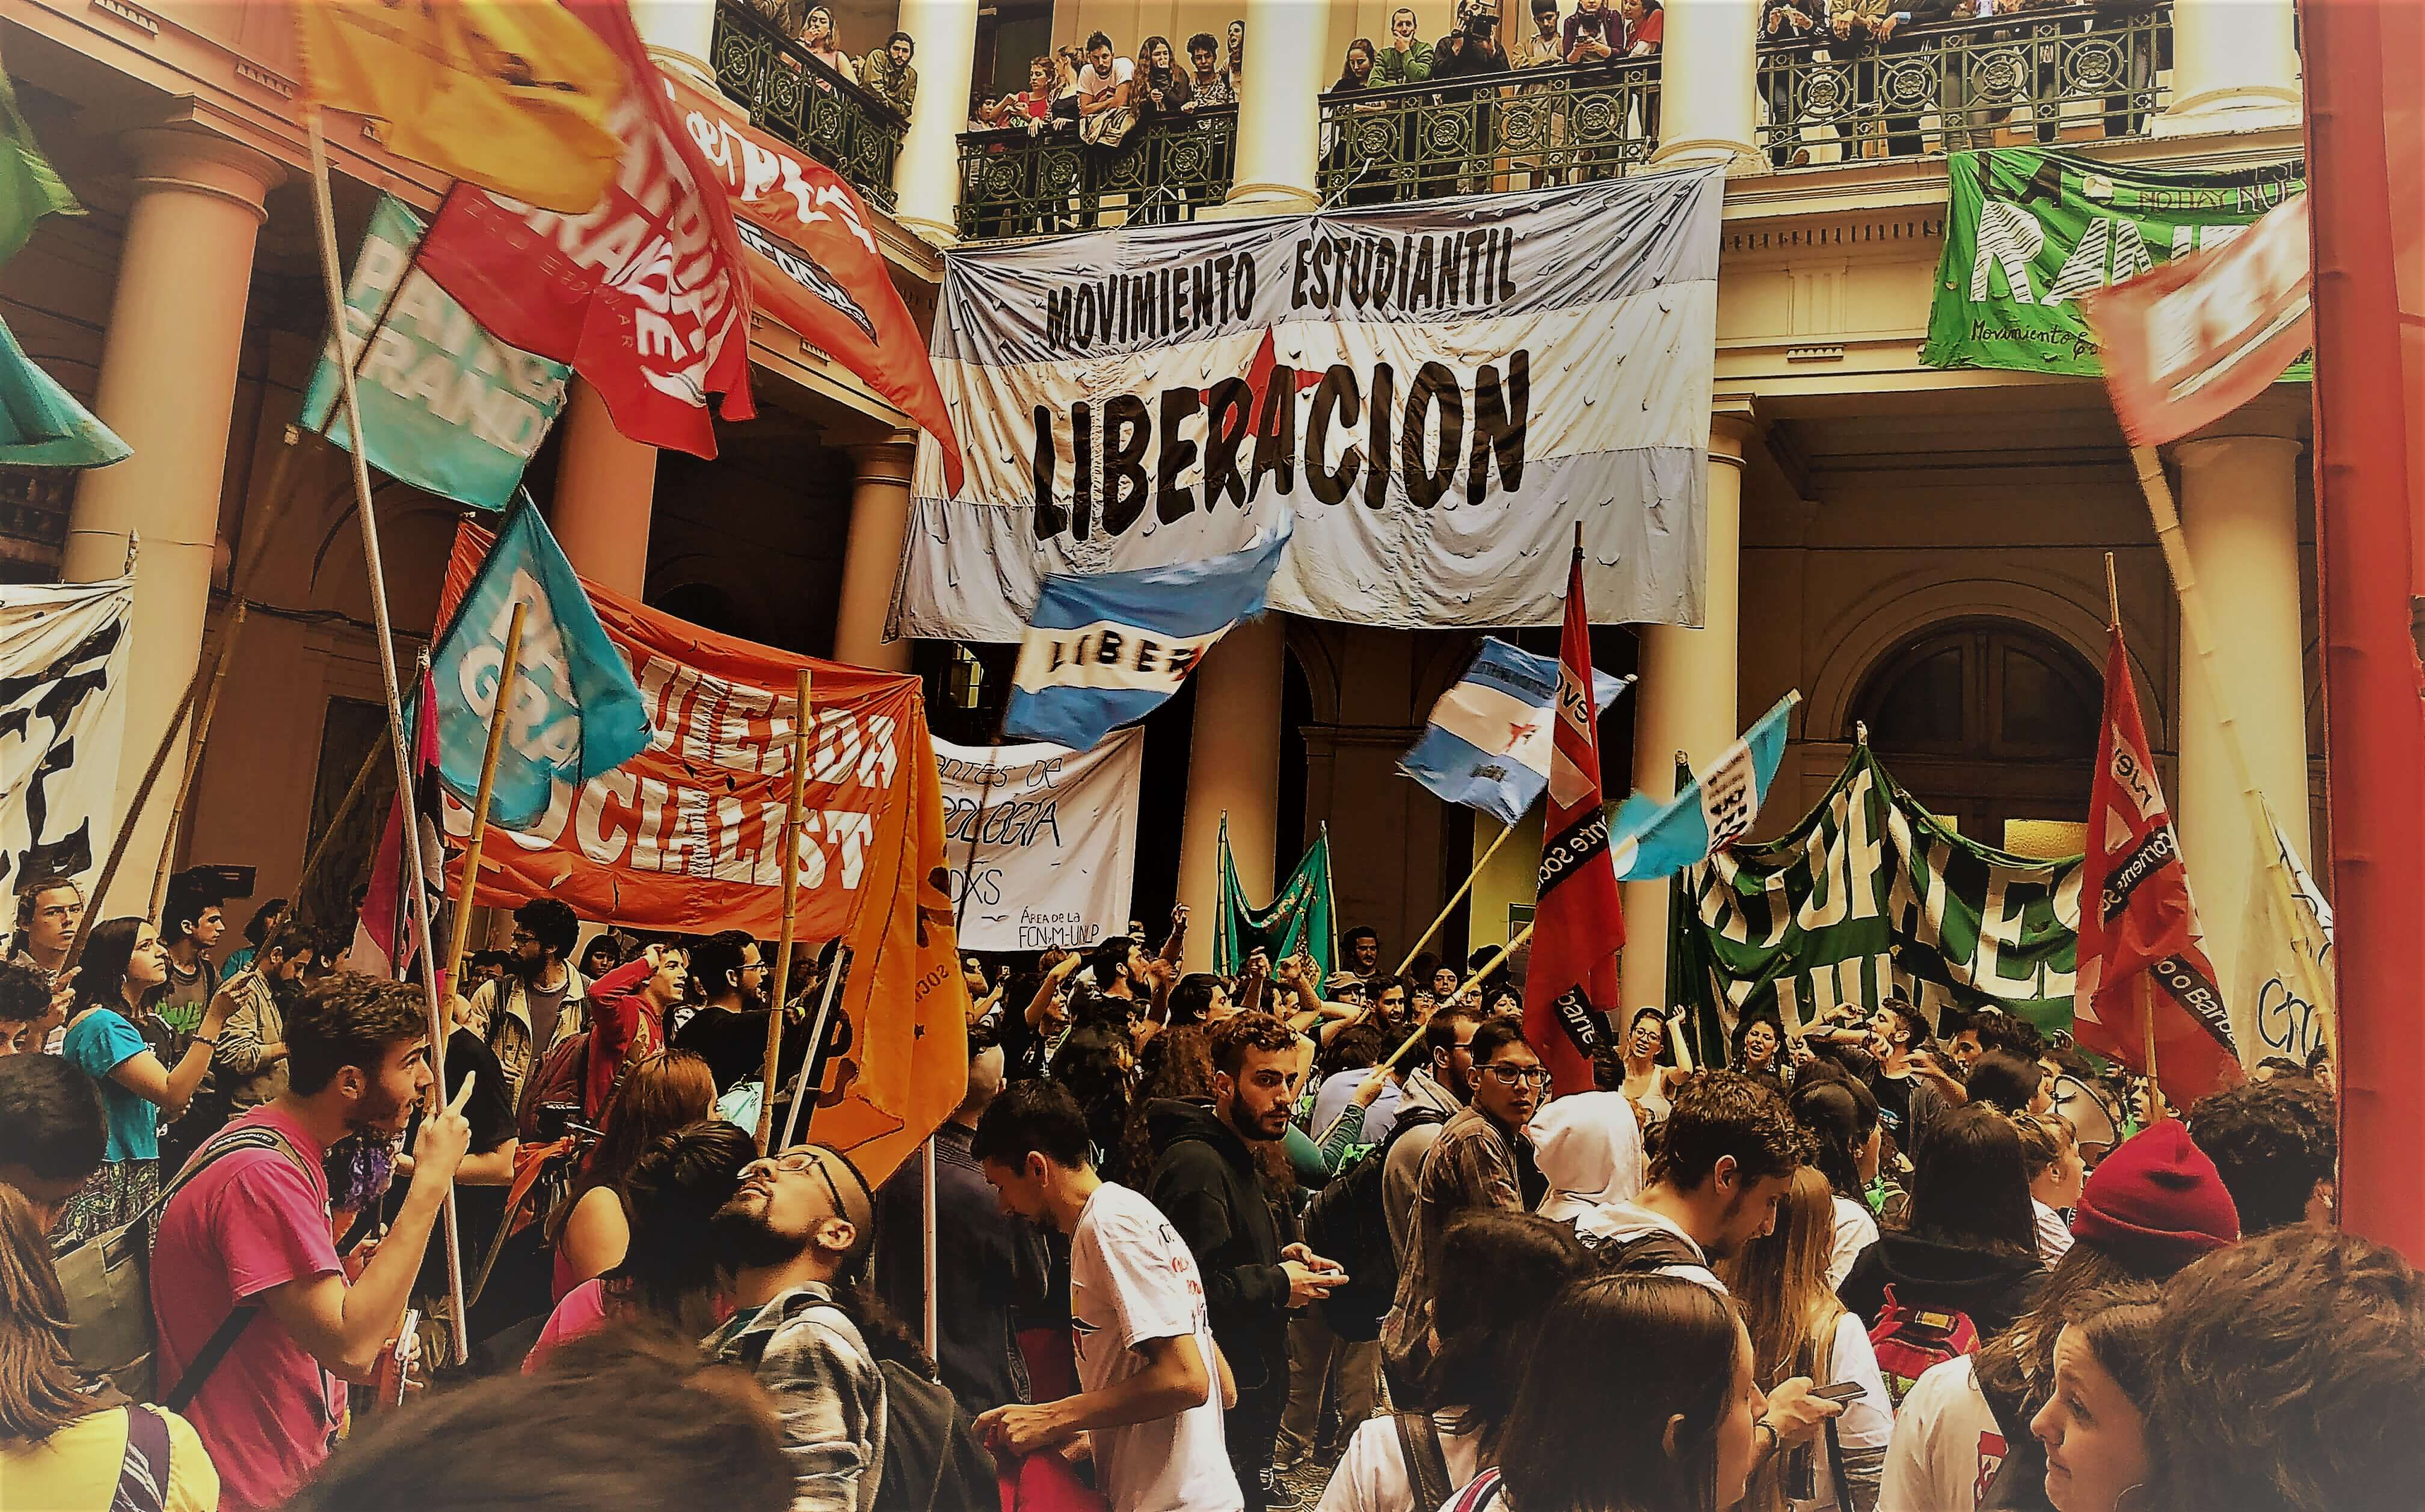 Argentina's Right to education